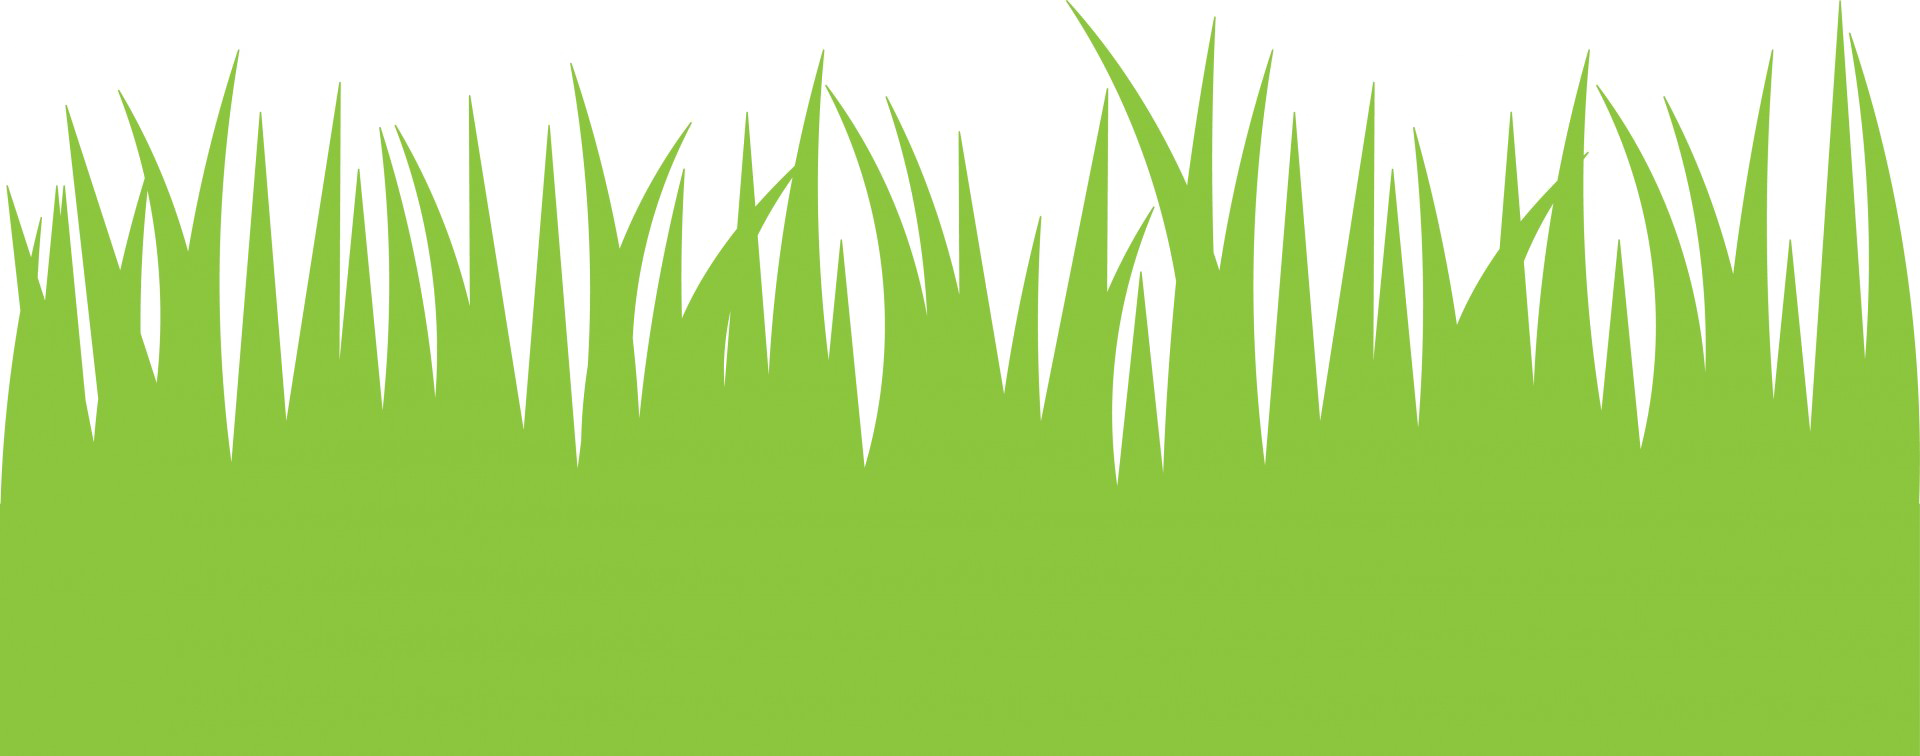 Grass cartoon png. People thousands of images